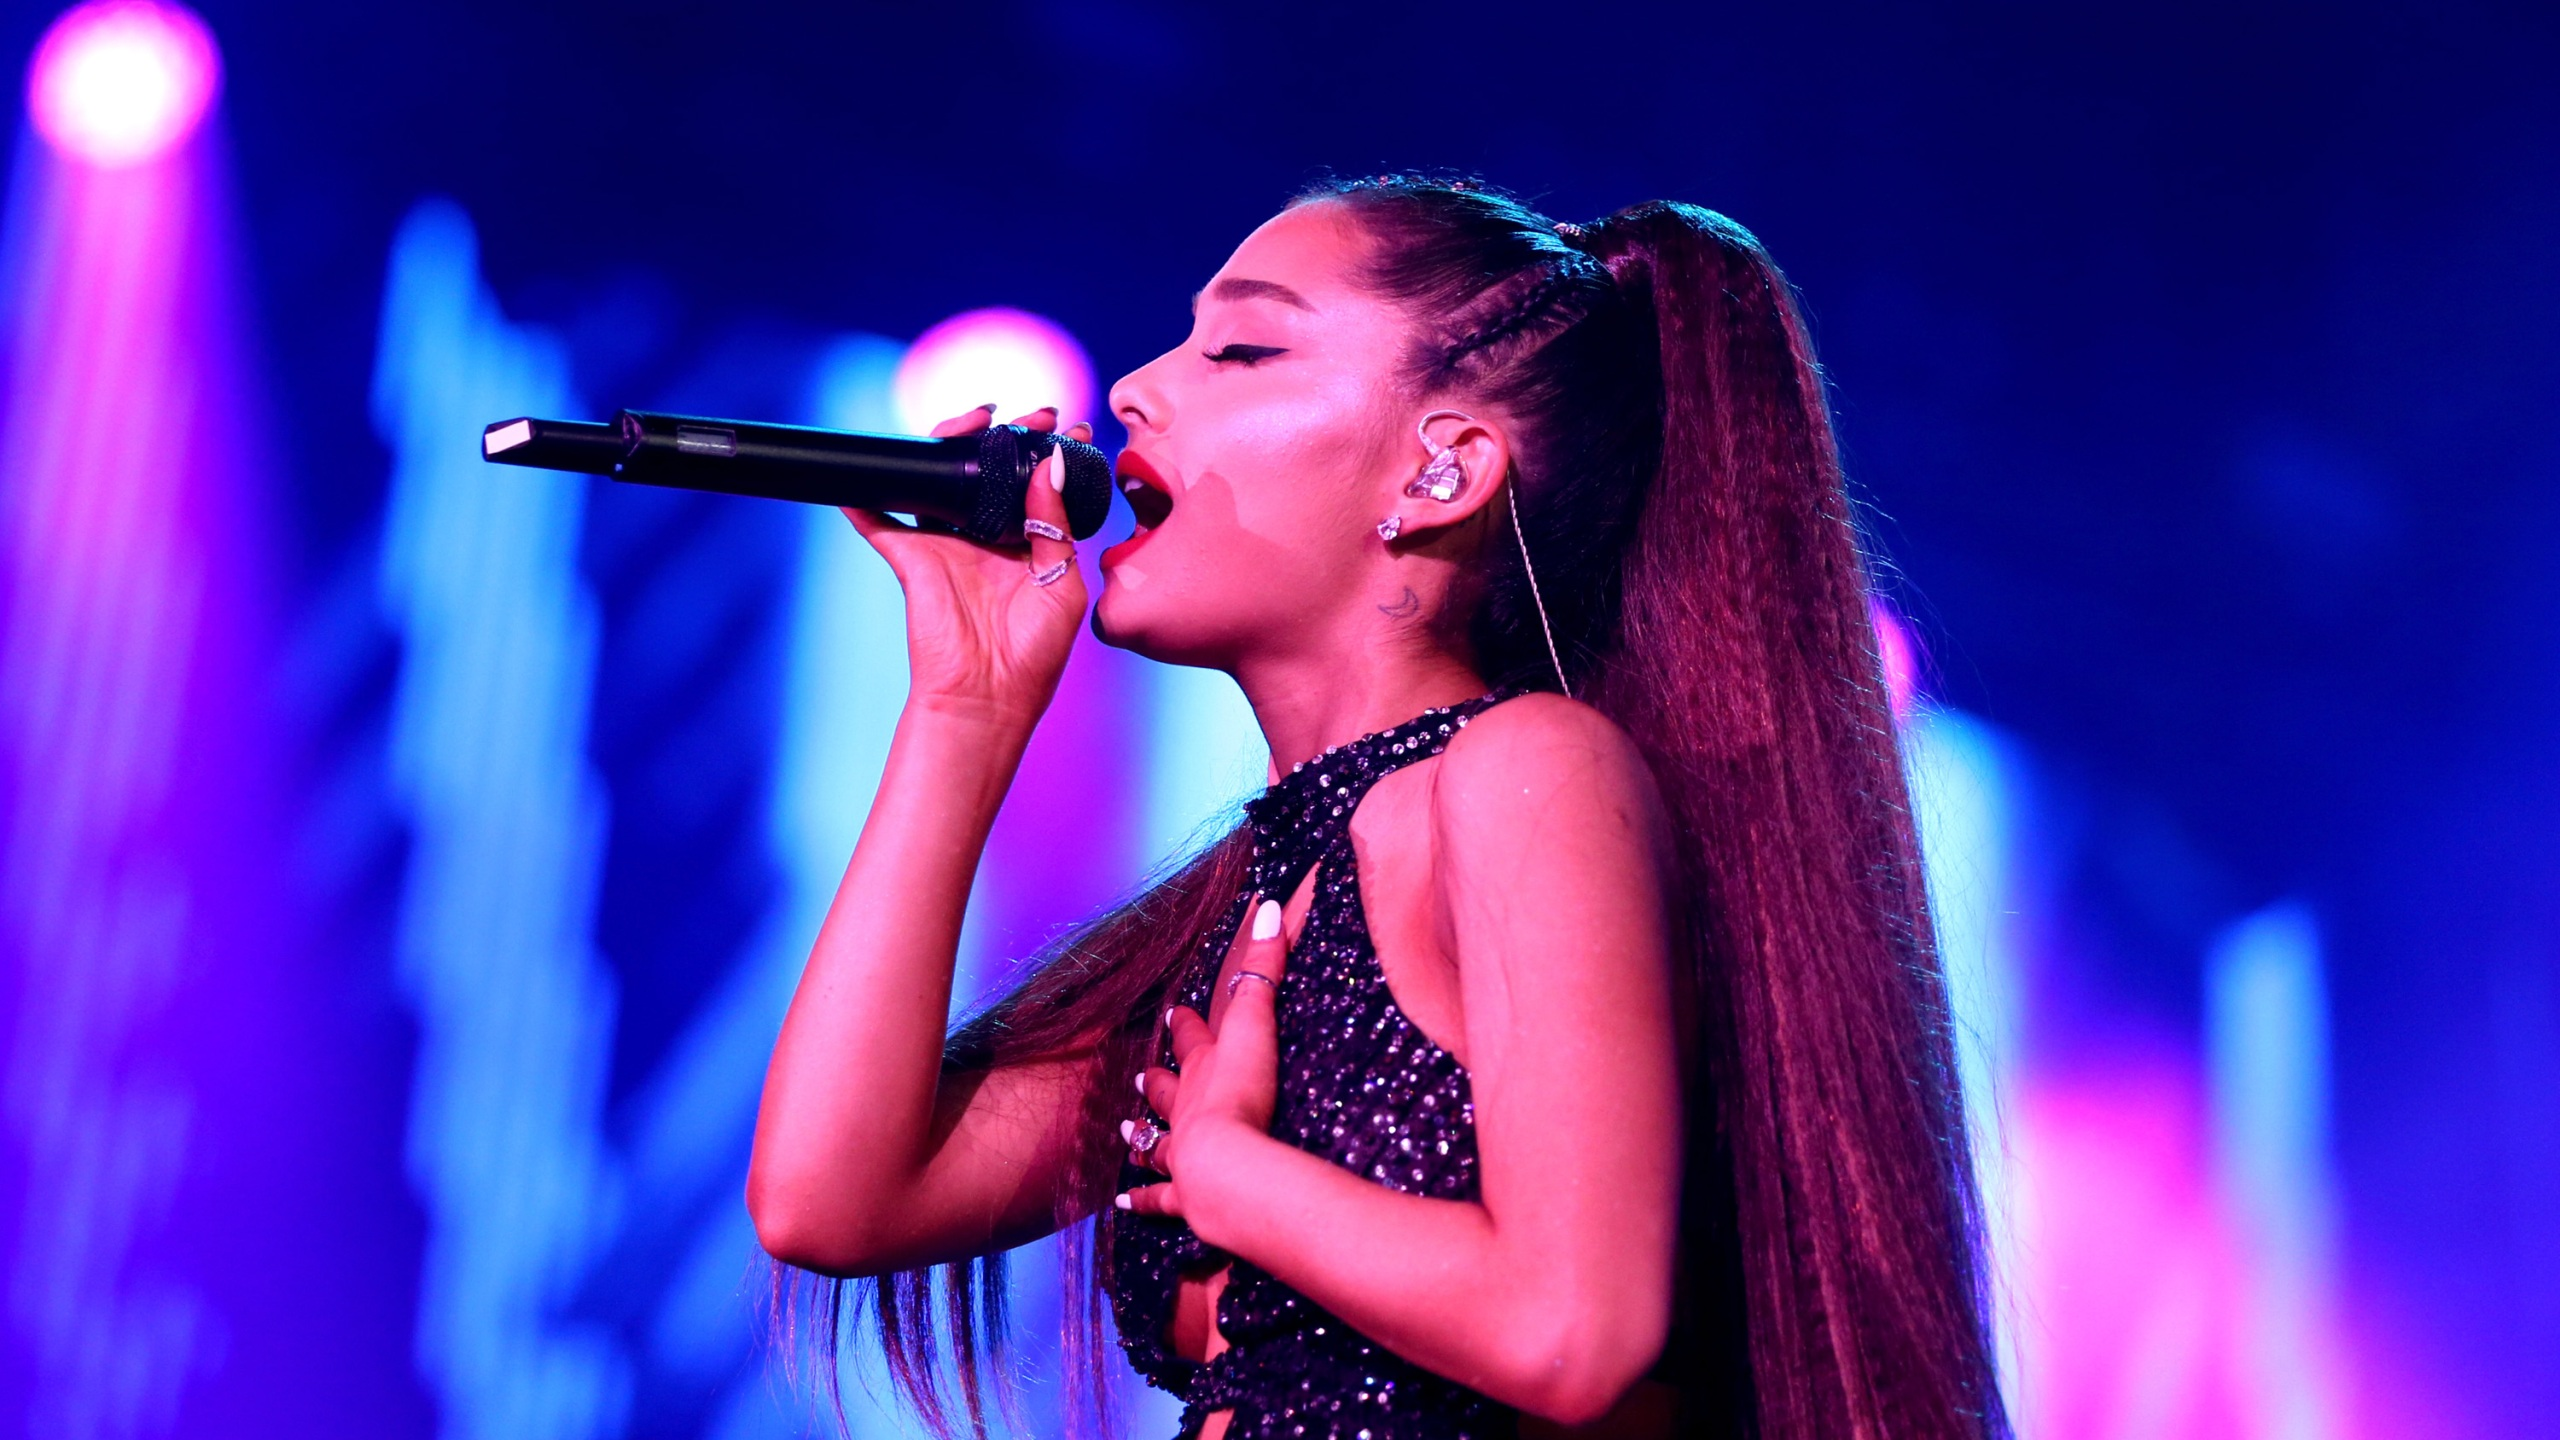 Ariana Grande performs onstage during the 2018 iHeartRadio Wango Tango by AT&T at Banc of California Stadium on June 2, 2018 in Los Angeles. (Rich Polk/Getty Images for iHeartMedia )